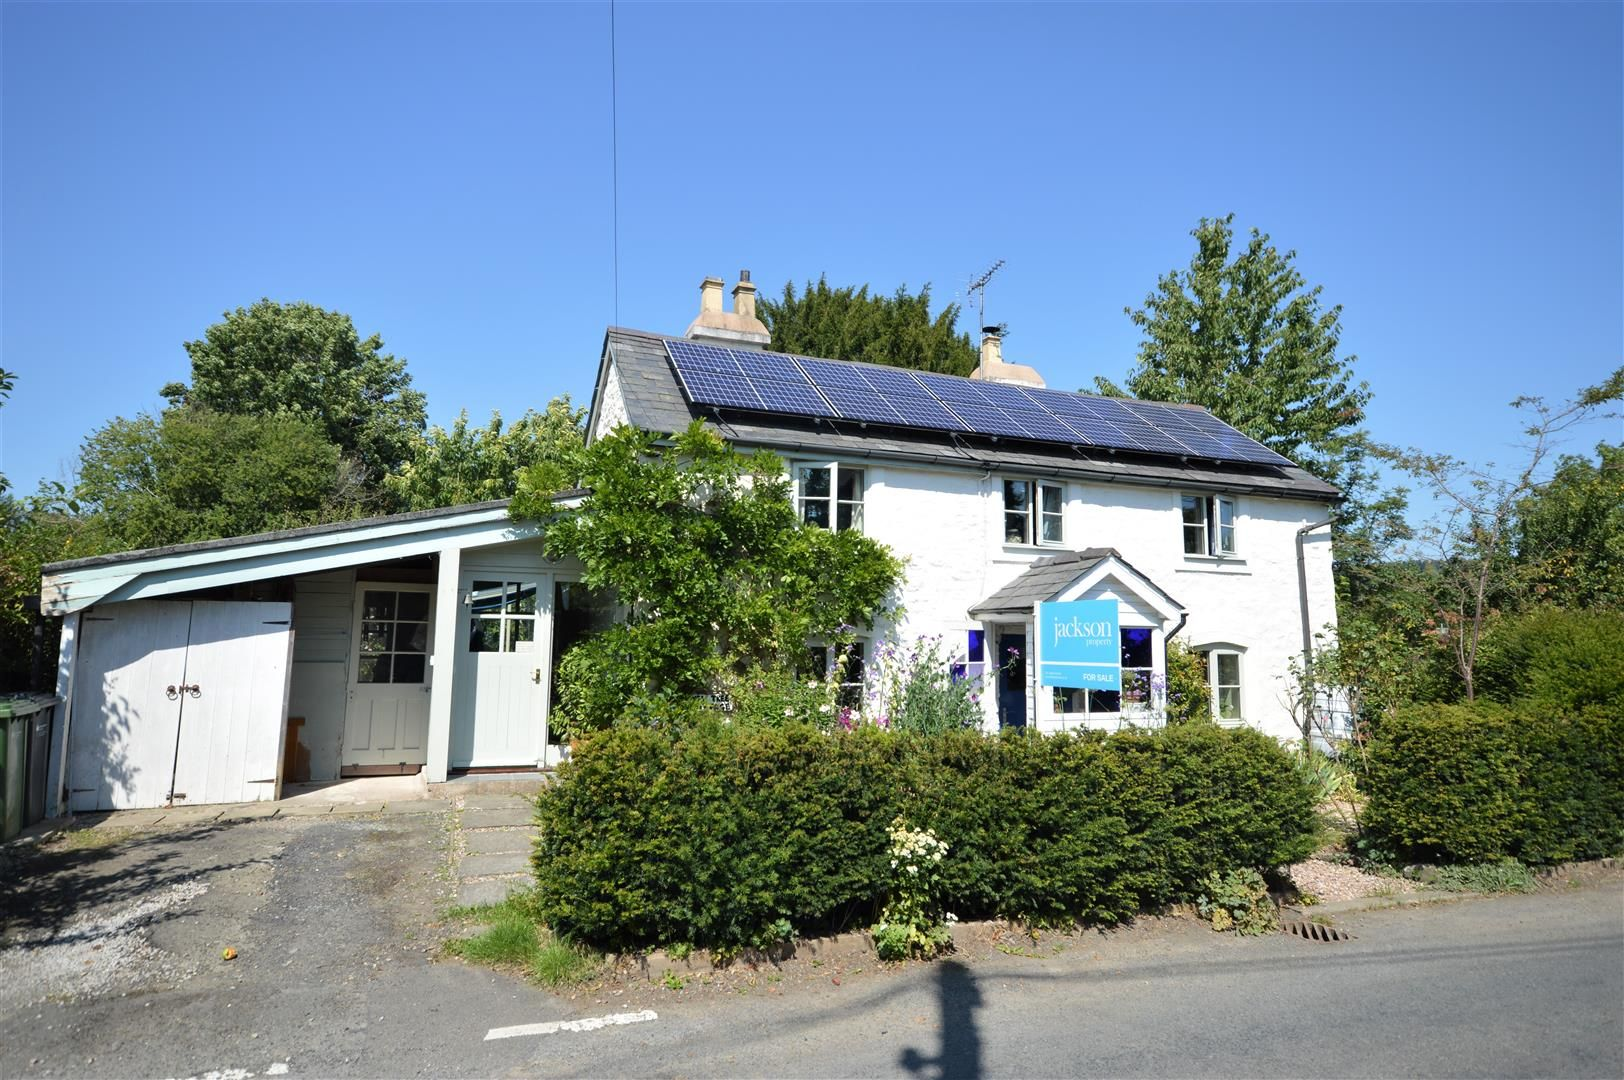 3 bed detached for sale in Stapleton, LD8